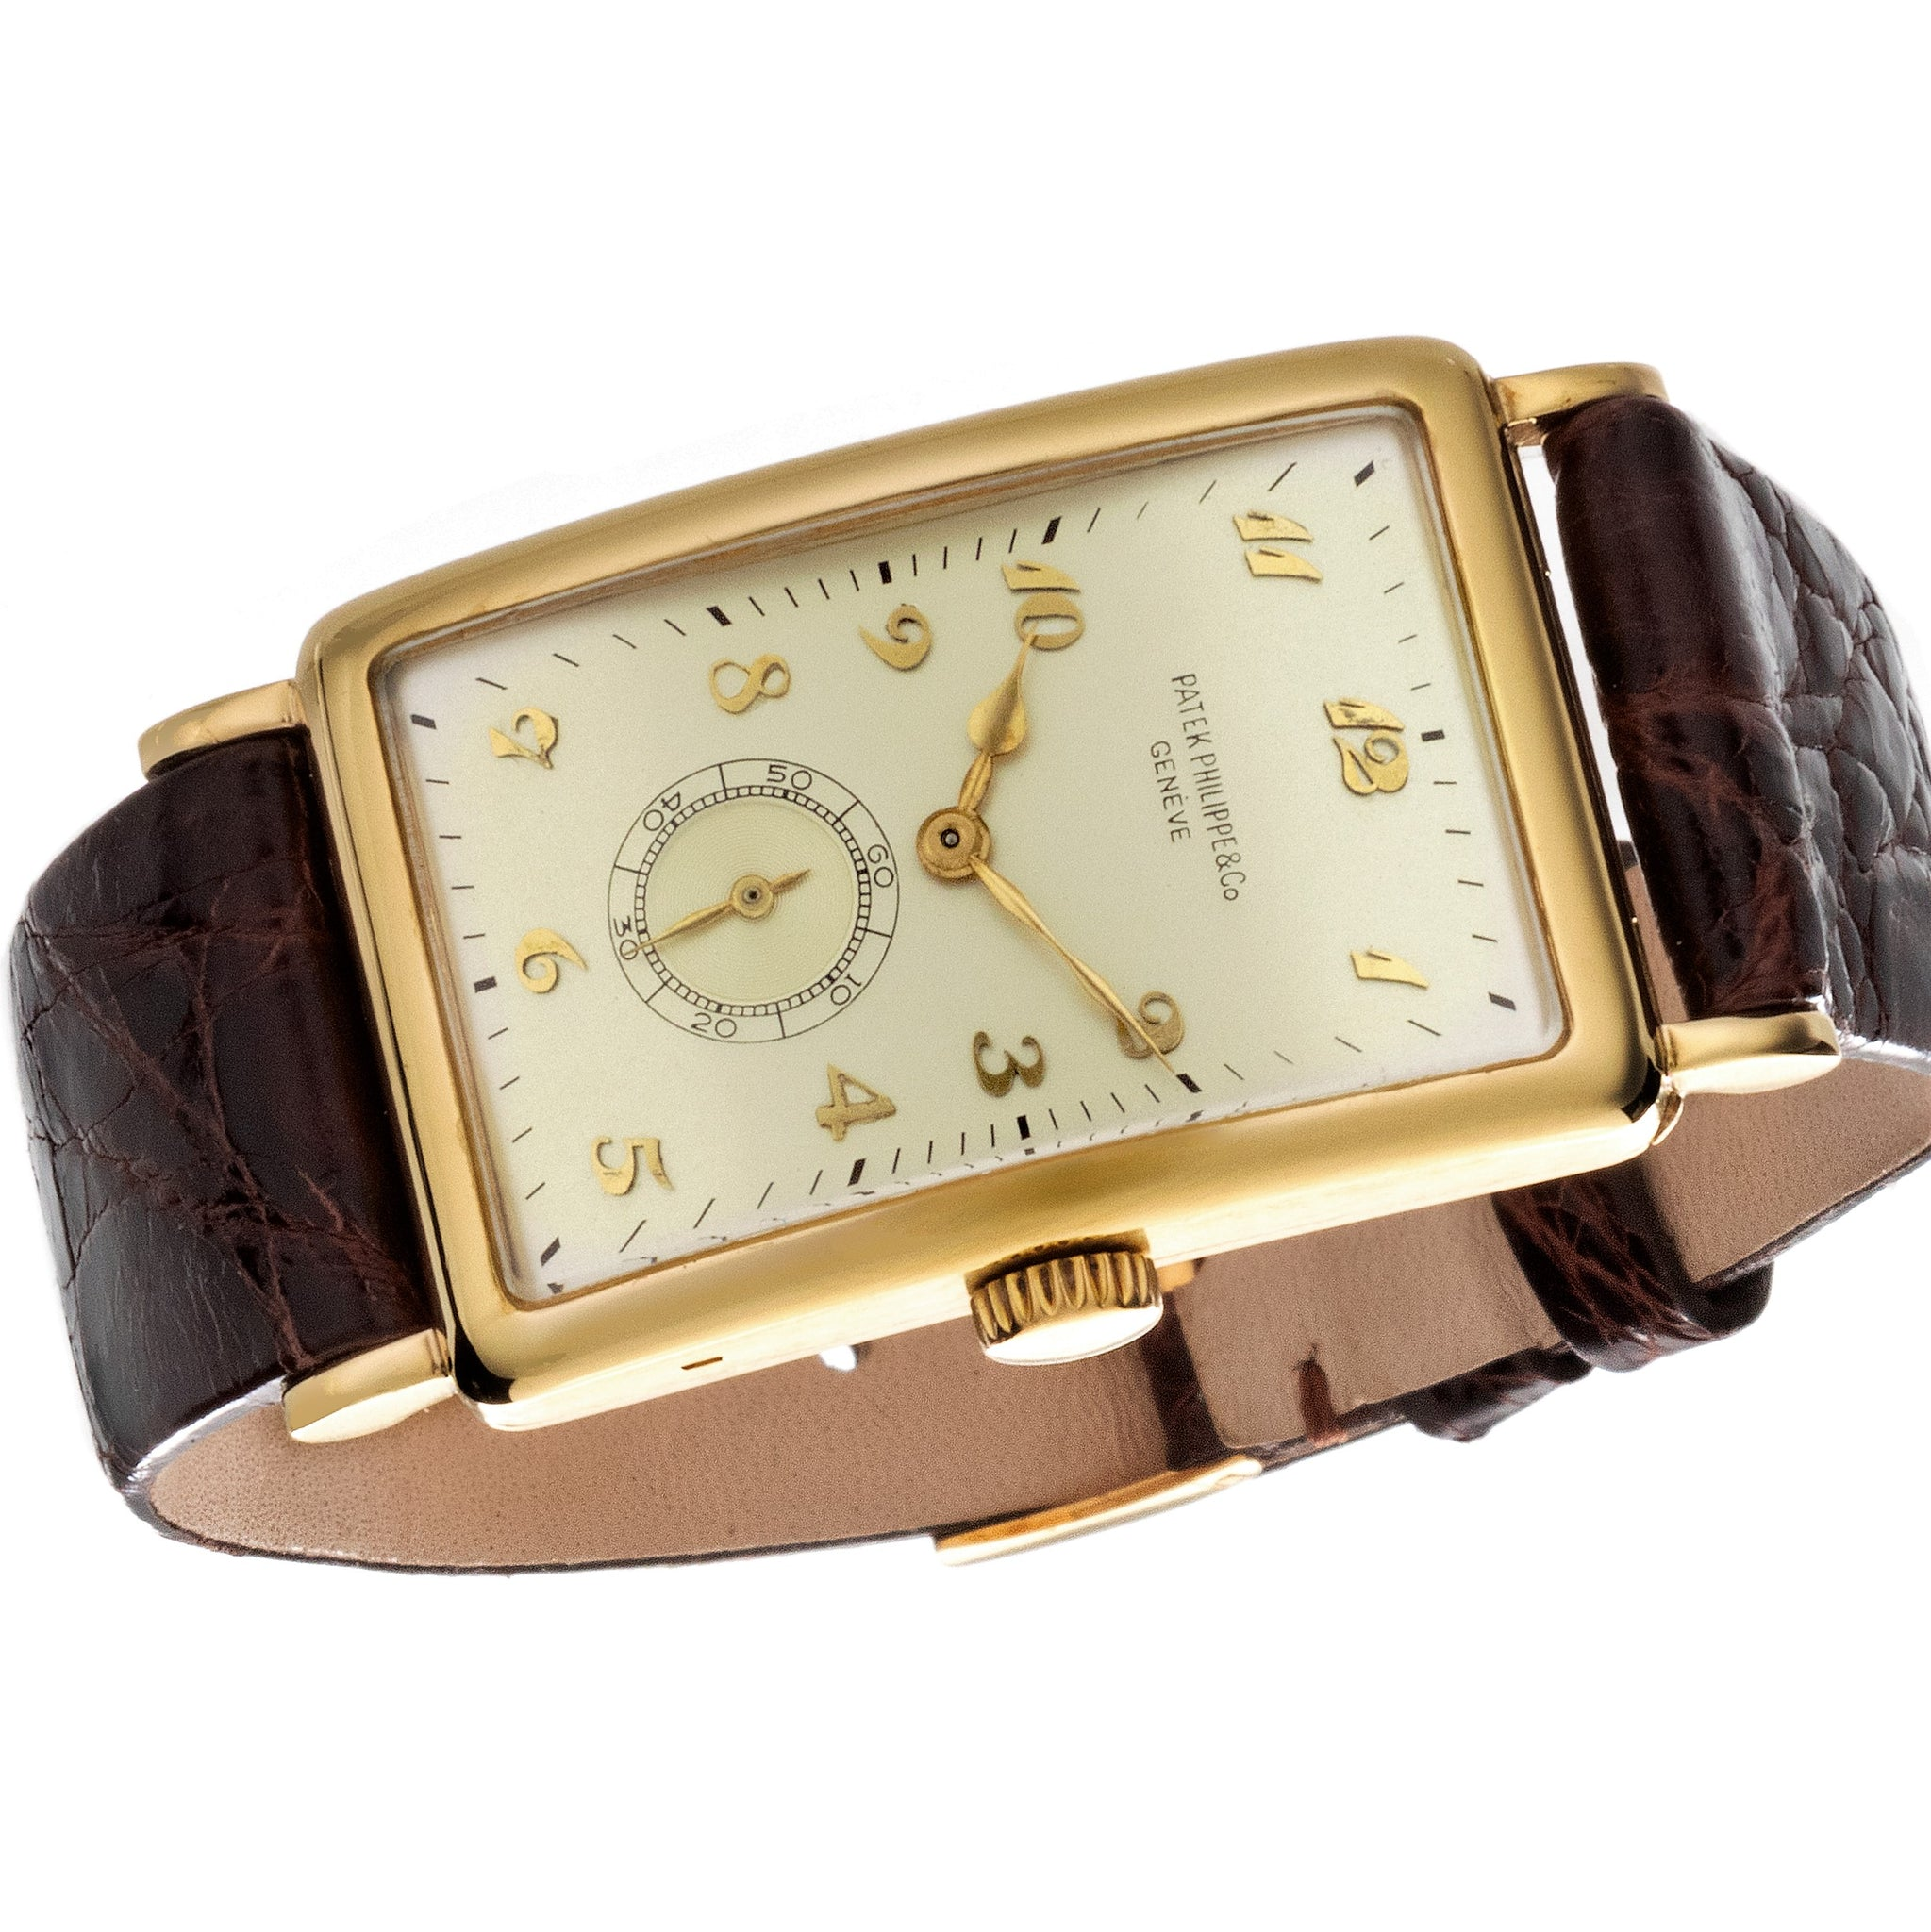 Patek Philippe 431J Art Deco Watch